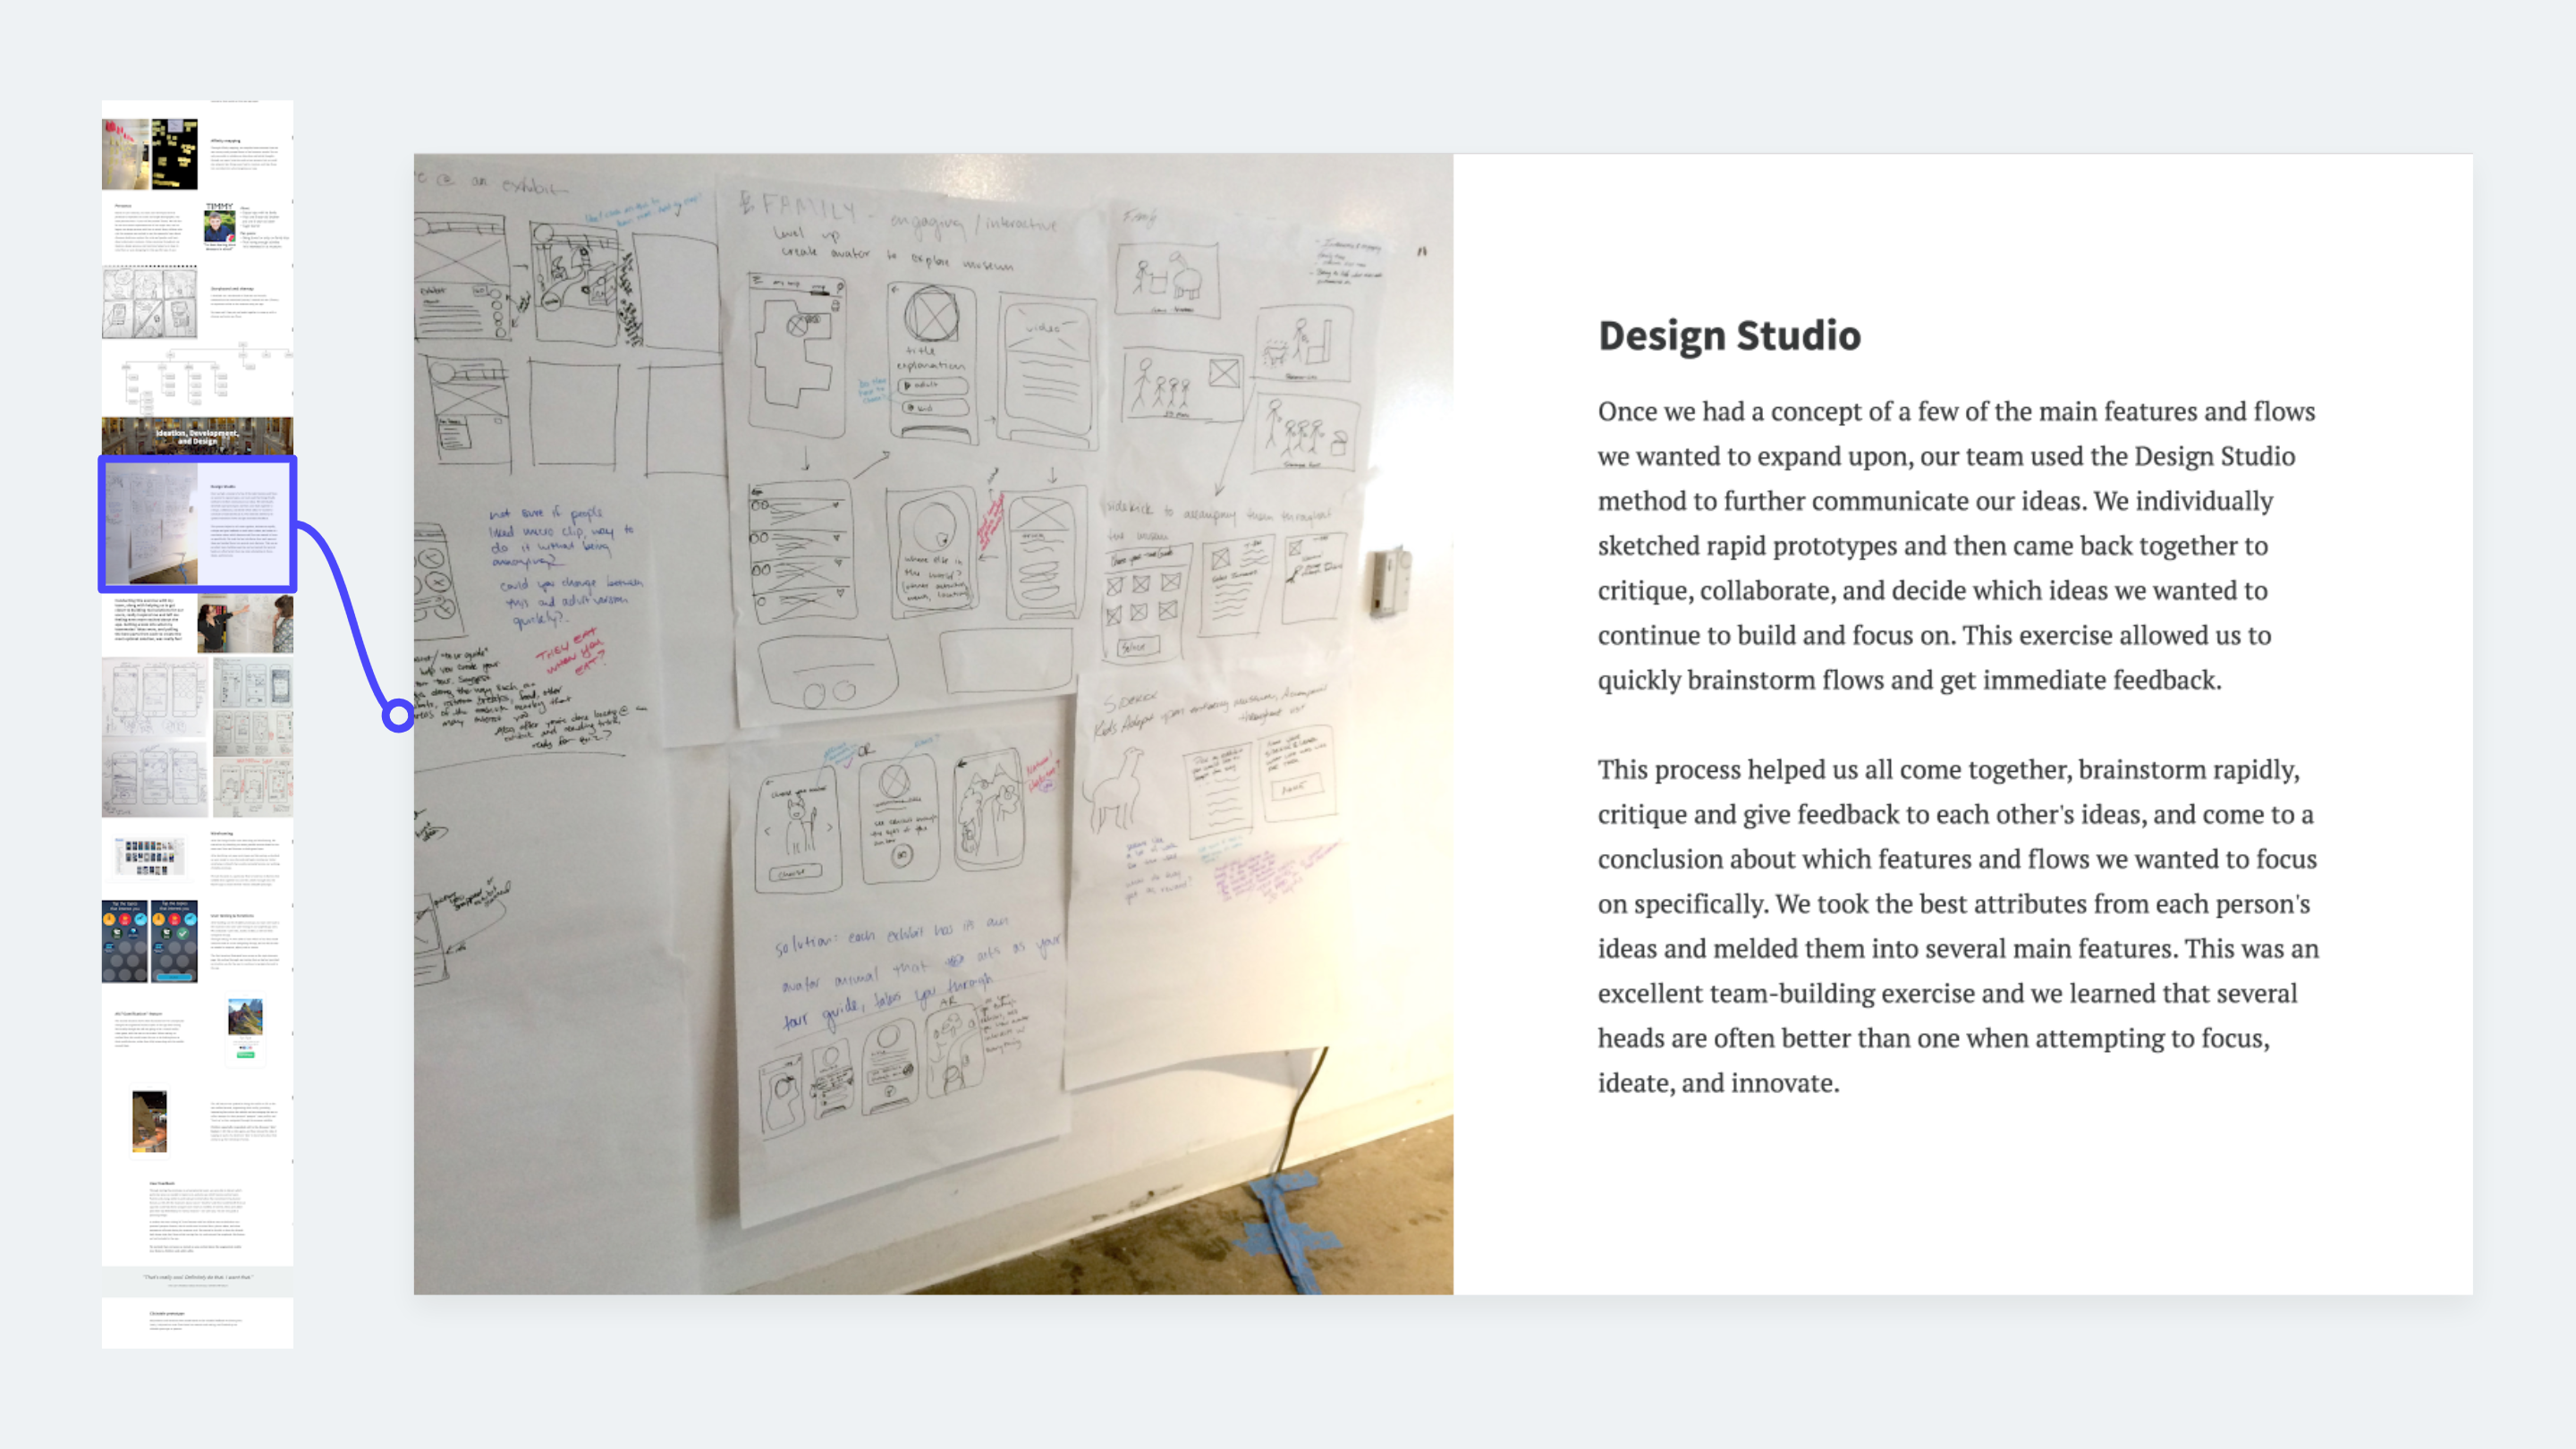 UX methods example: Design studio